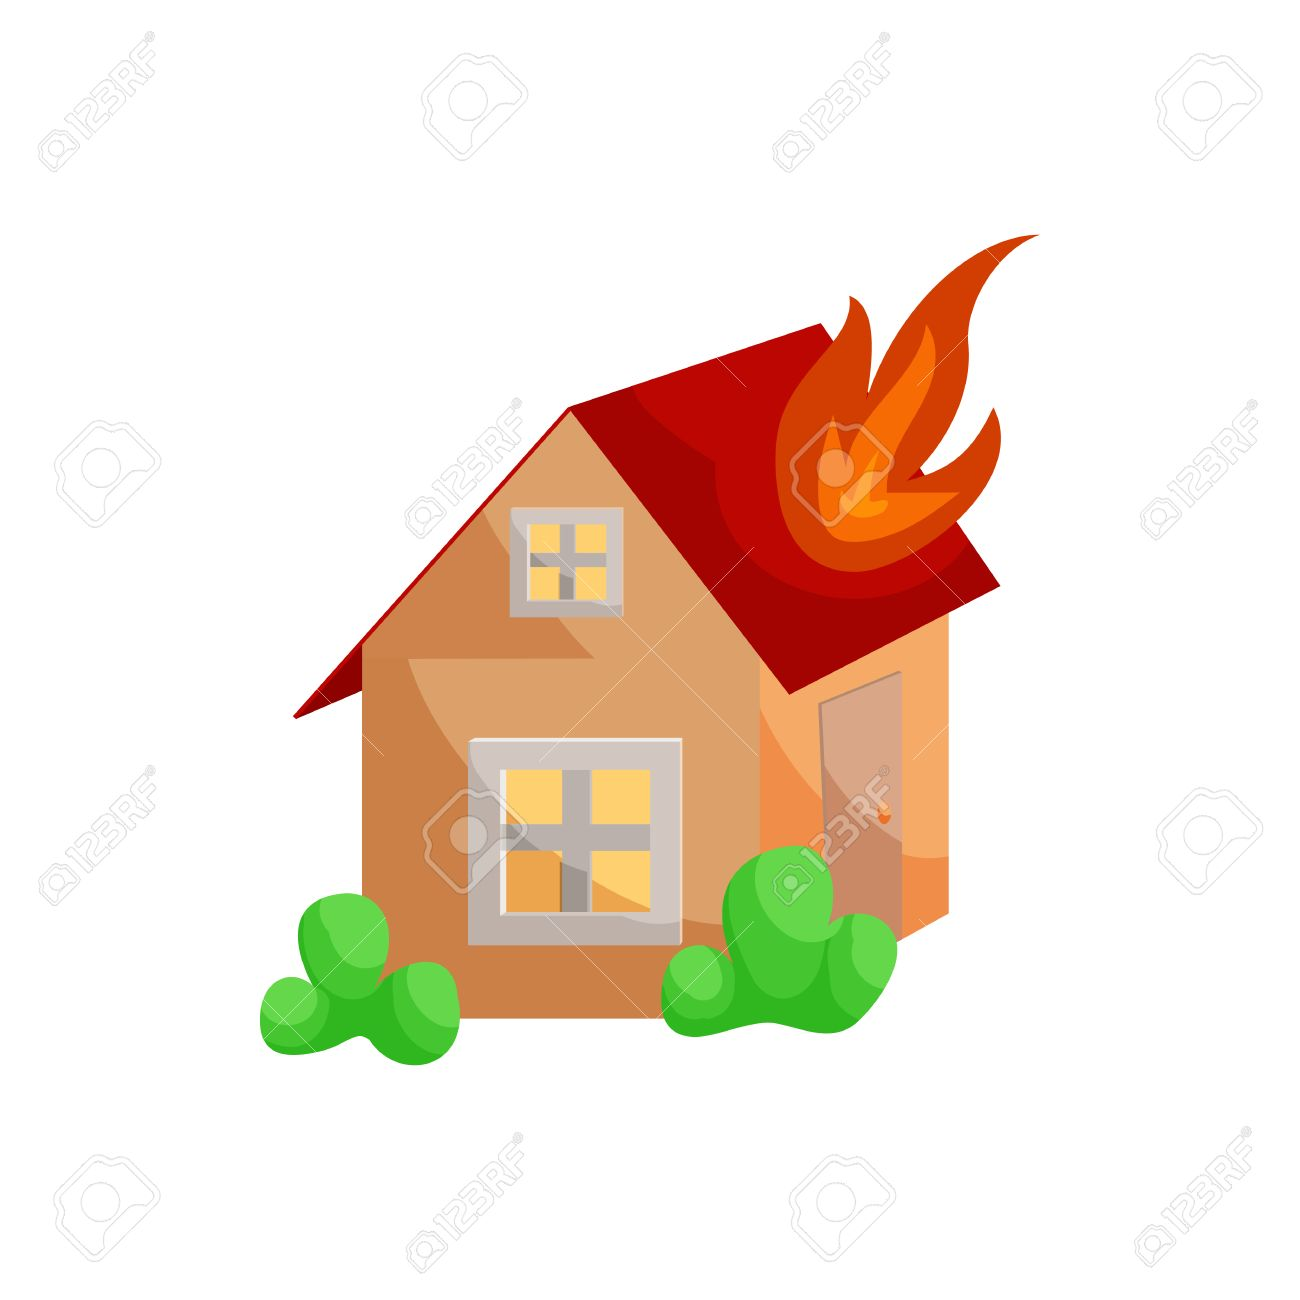 Fire Insurance Icon In Cartoon Style Isolated On White Background